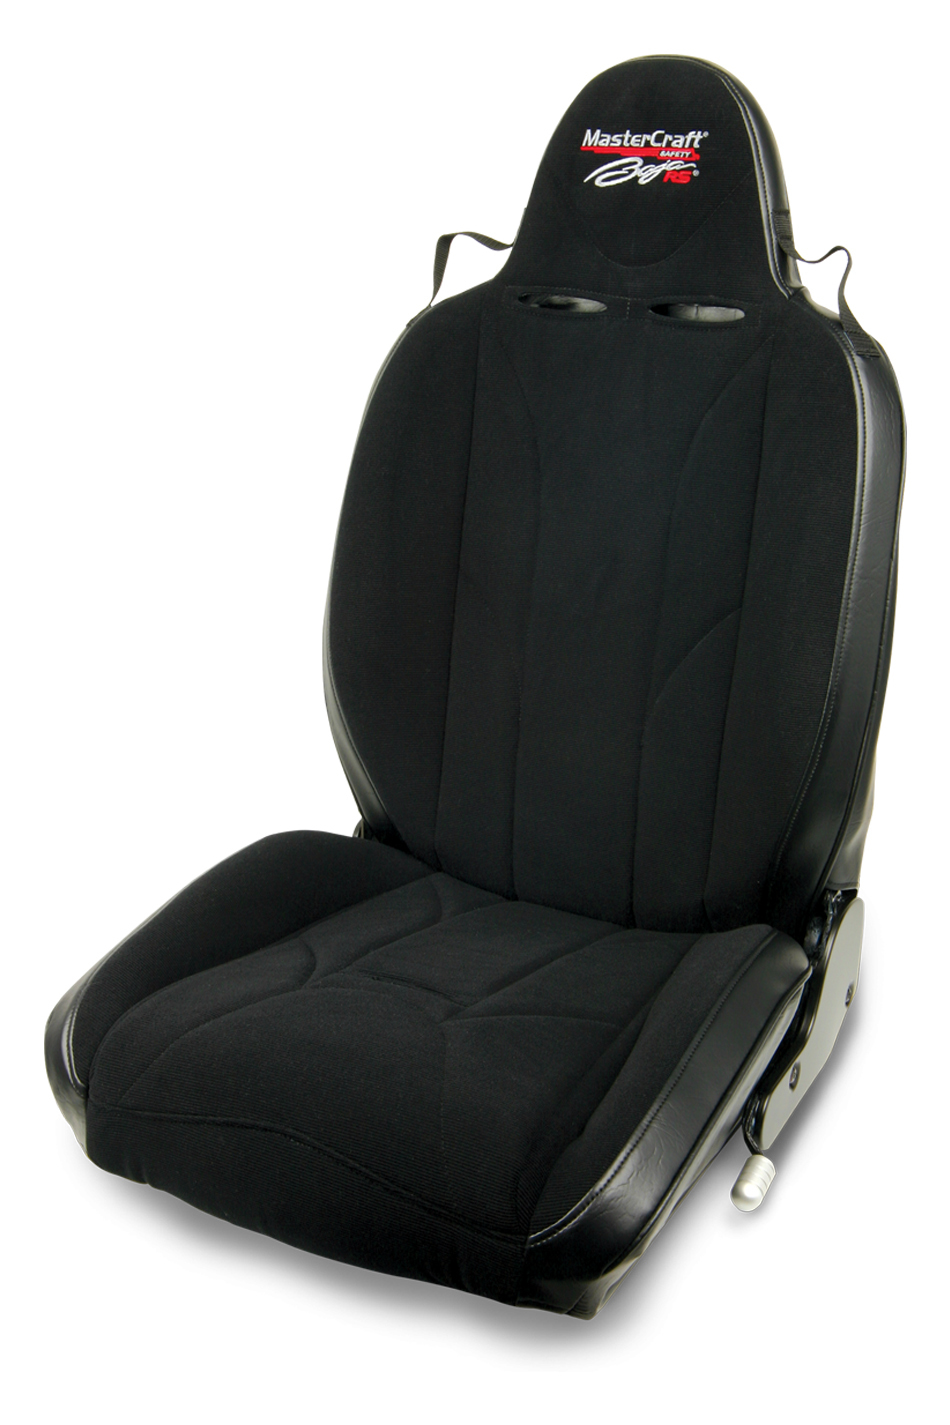 Mastercraft 504024 Seat, Baja RS, Driver Side, Reclining, Hip / Side Bolsters, Harness Openings, Cloth / Vinyl, Black, Each